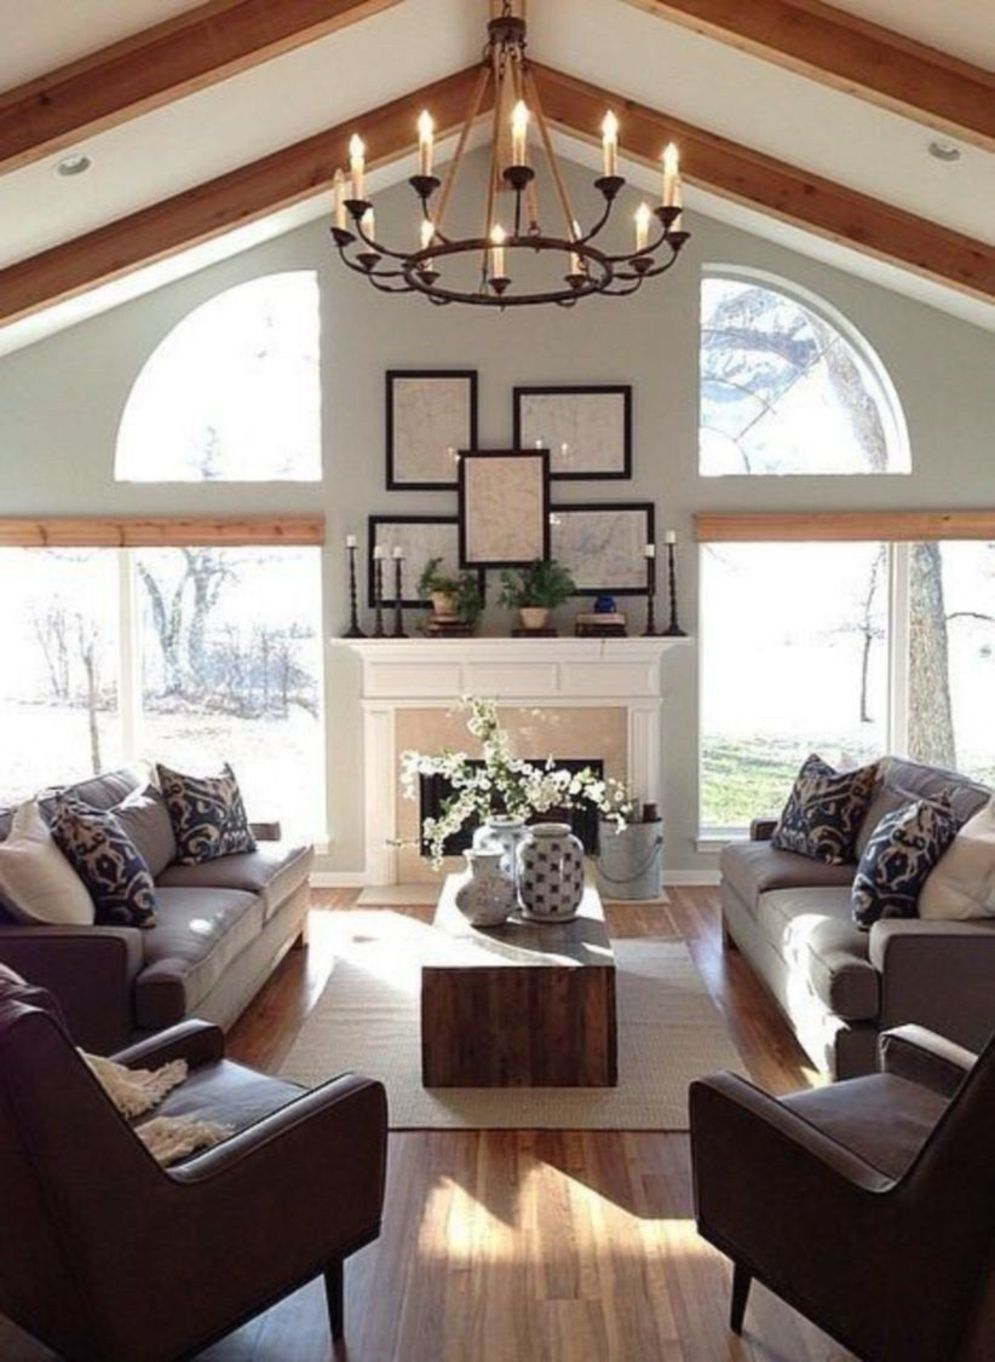 Spacious home images with vaulted ceiling showcasing grand and wonderful home design Image 27